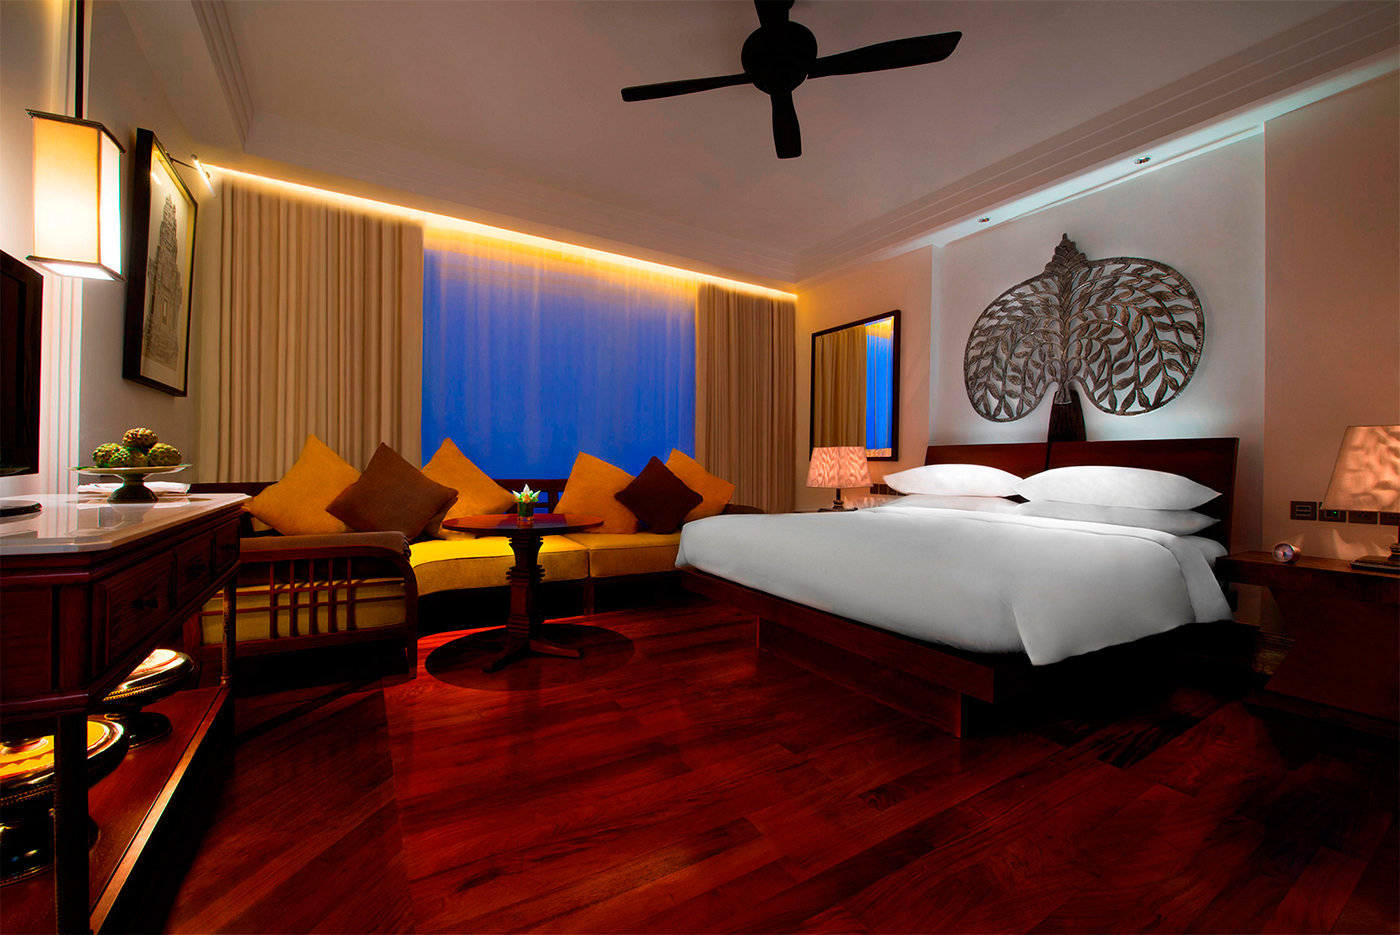 Anantara Hotels adopts IDeaS P